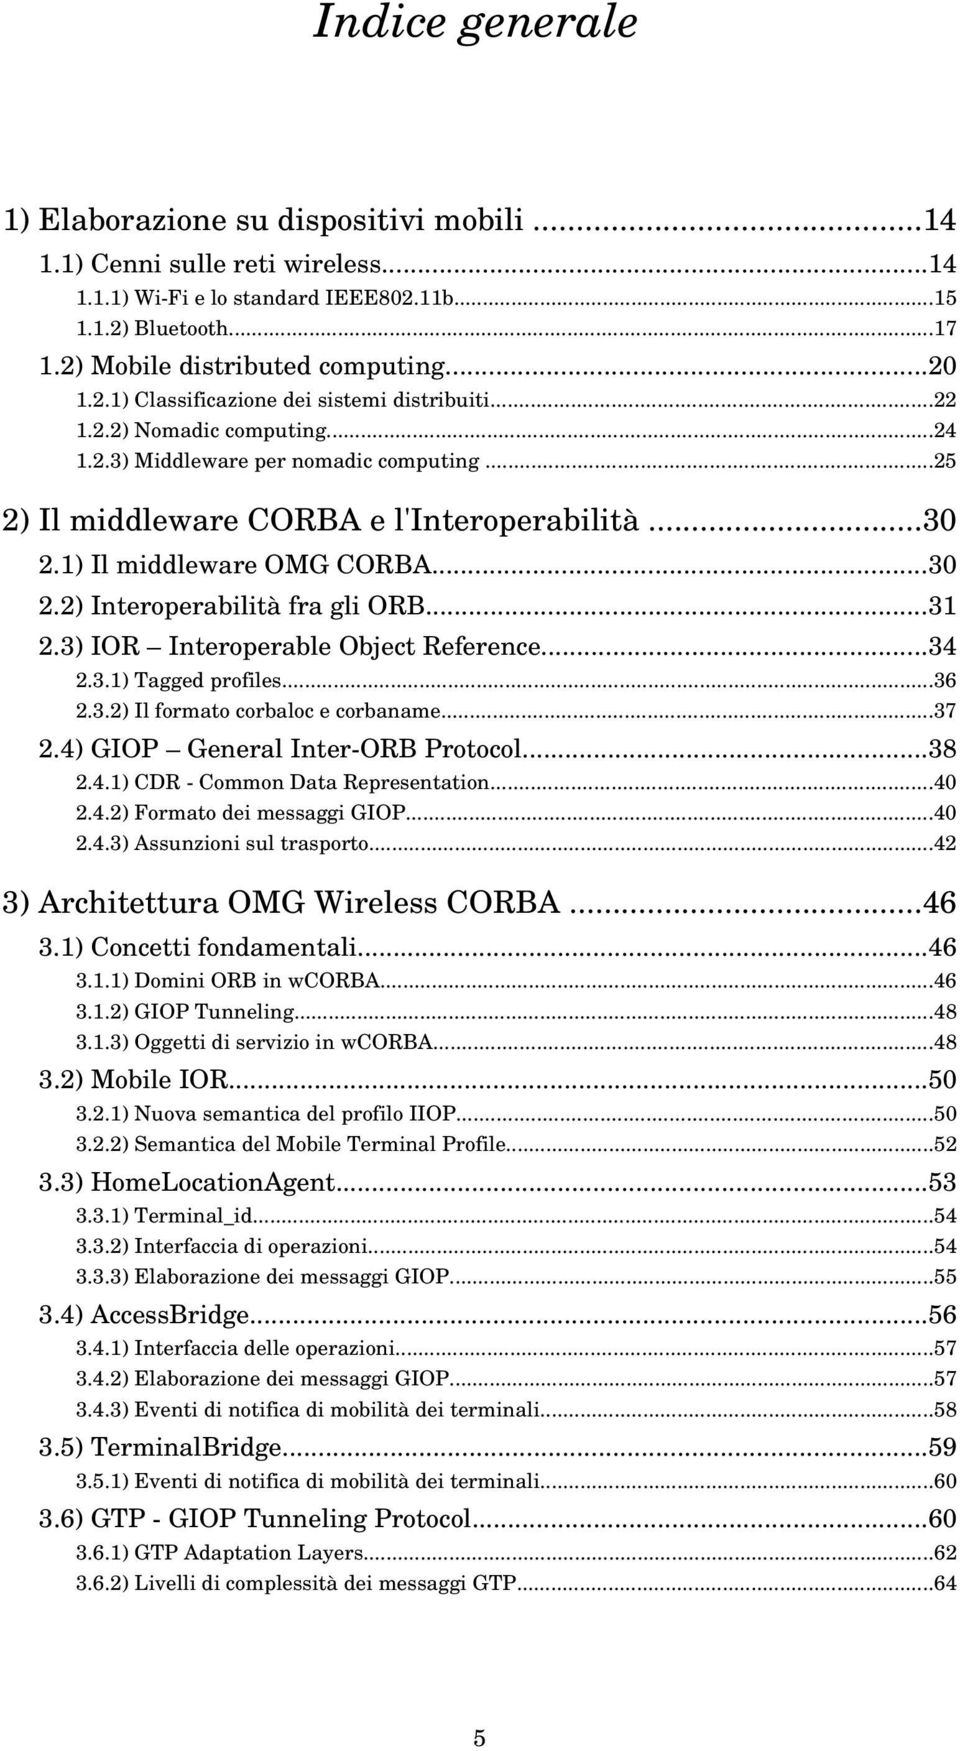 1) Il middleware OMG CORBA...30 2.2) Interoperabilità fra gli ORB...31 2.3) IOR Interoperable Object Reference...34 2.3.1) Tagged profiles...36 2.3.2) Il formato corbaloc e corbaname...37 2.